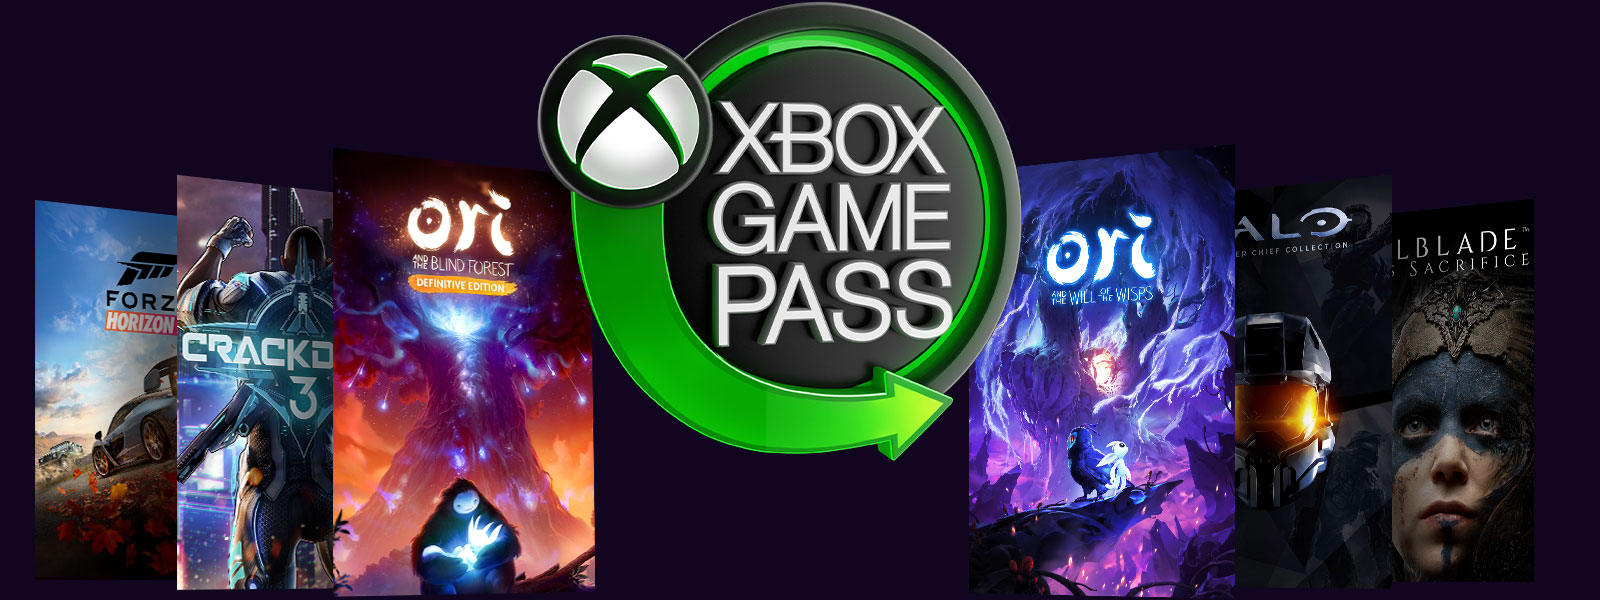 Logo Xbox Game Pass s obrázky obalů her Ori and the Will of the Wisps, Ori and the Blind Forest, Crackdown 3, Halo, Forza Horizon 4 a Hellblade